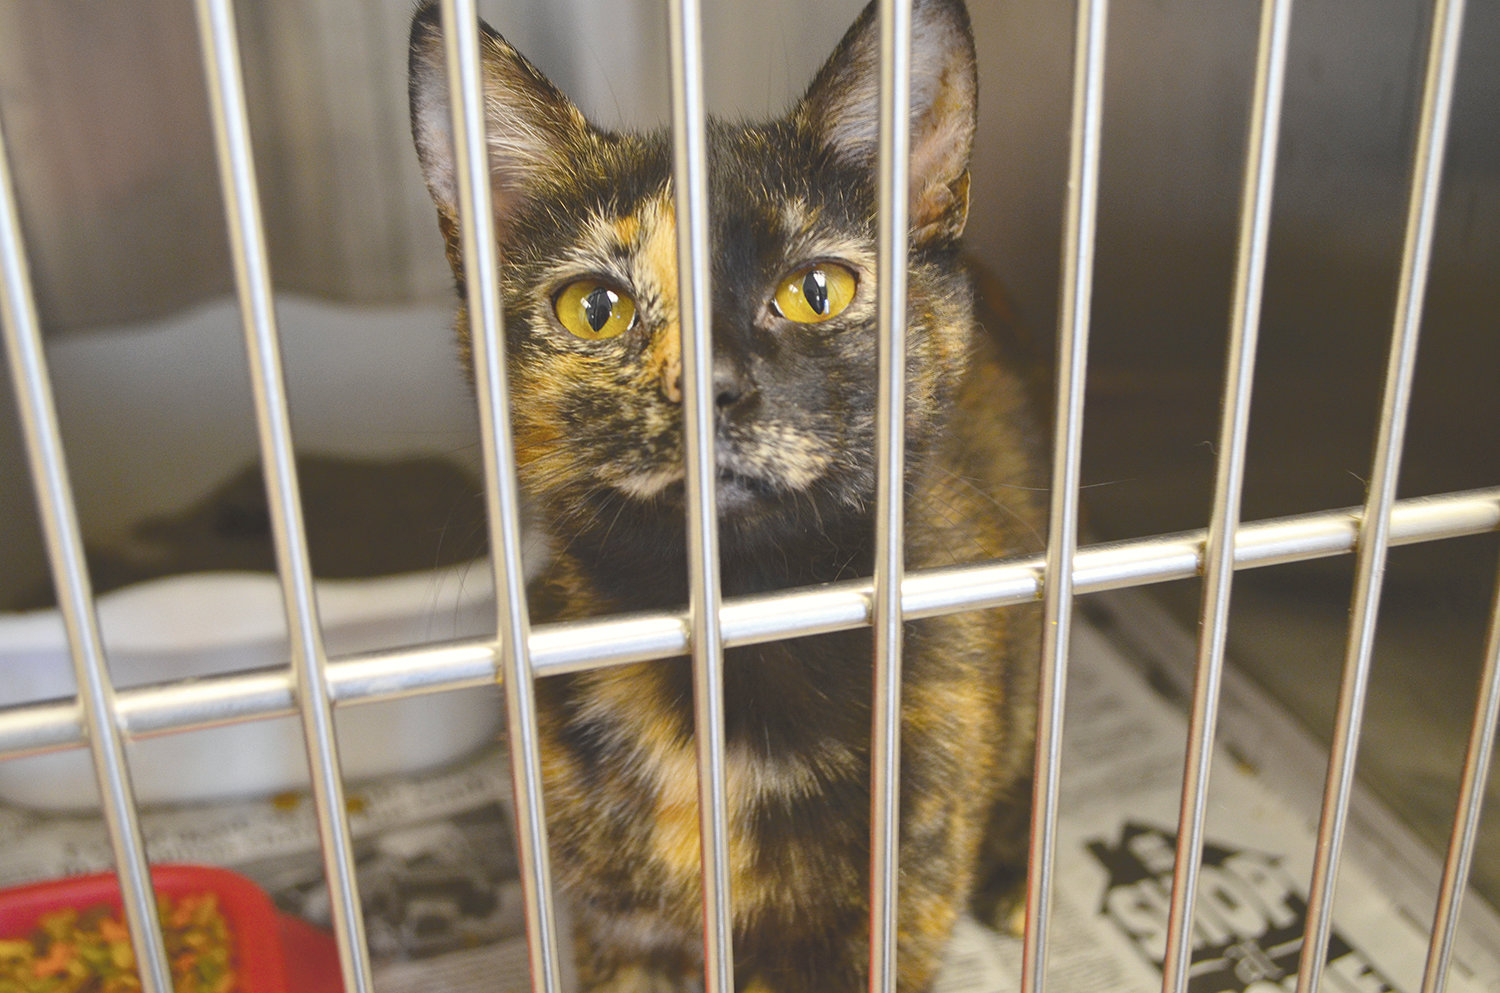 Around eight cats are available for adoption at the county's animal shelter.